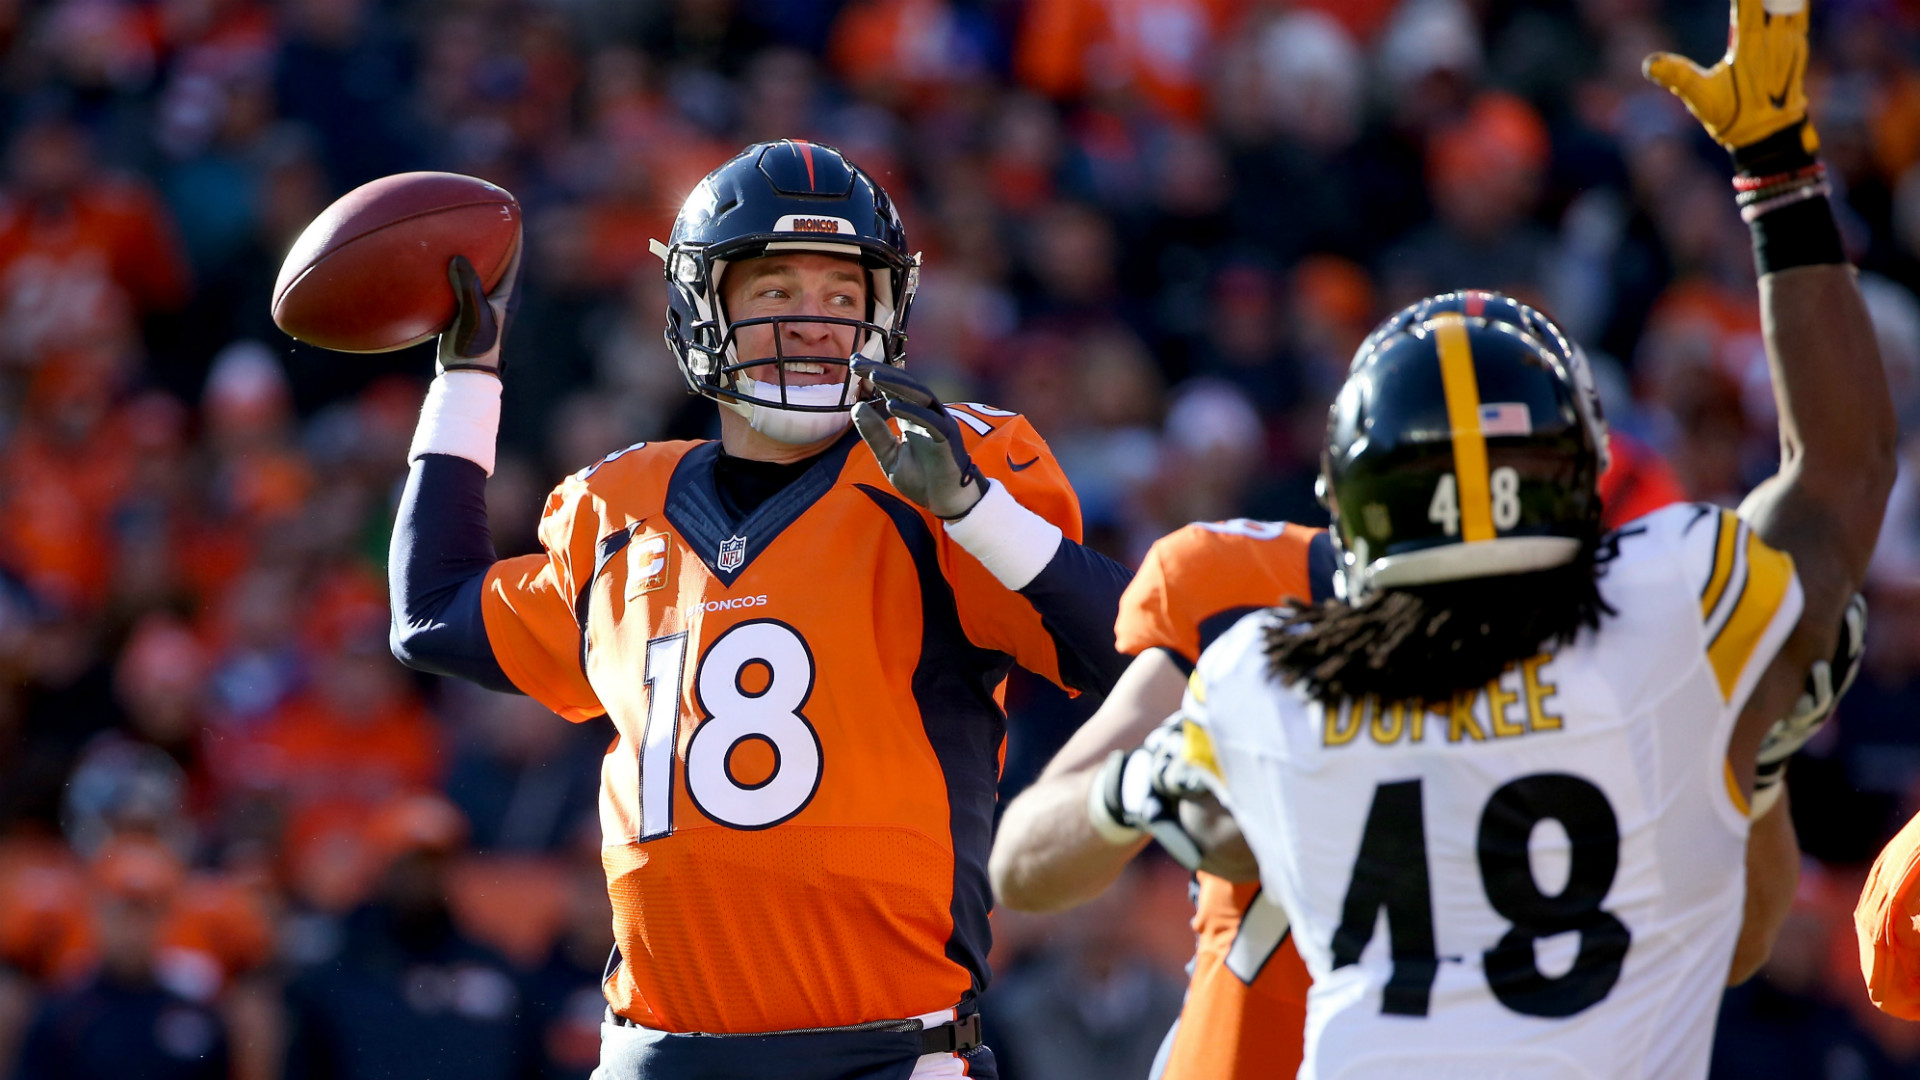 NFL Playoffs: Pittsburgh Steelers at Denver Broncos